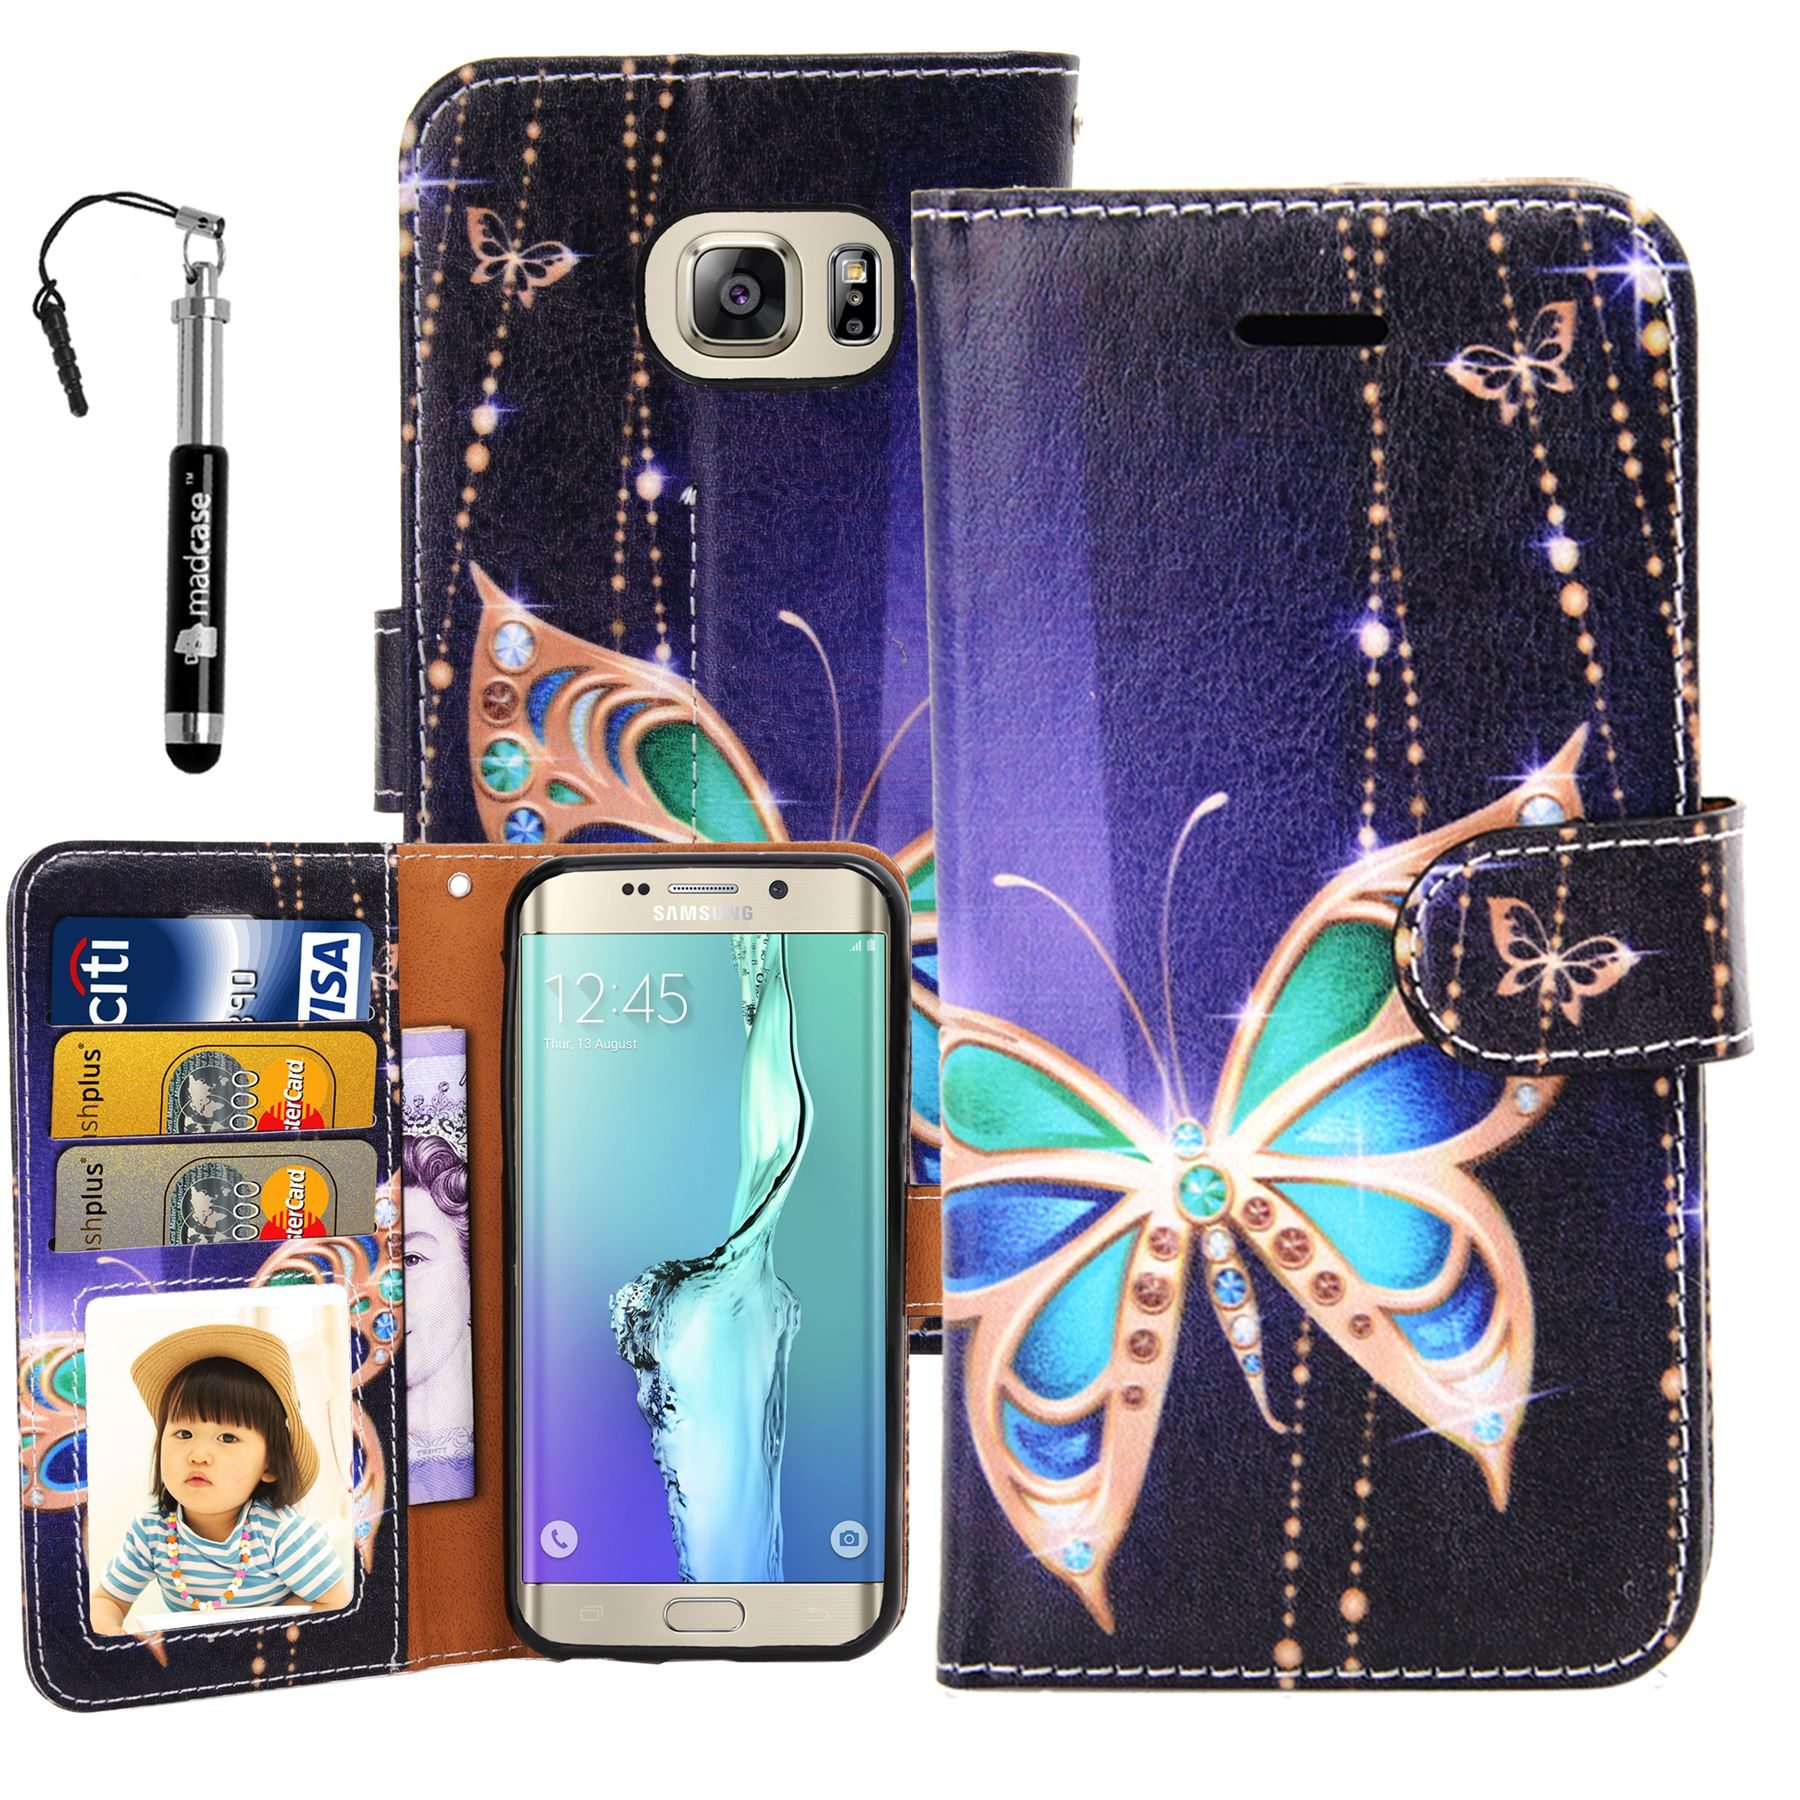 For-Samsung-Galaxy-S6-Edge-Leather-Case-Cute-Design-Wallet-Credit-Card-Cover